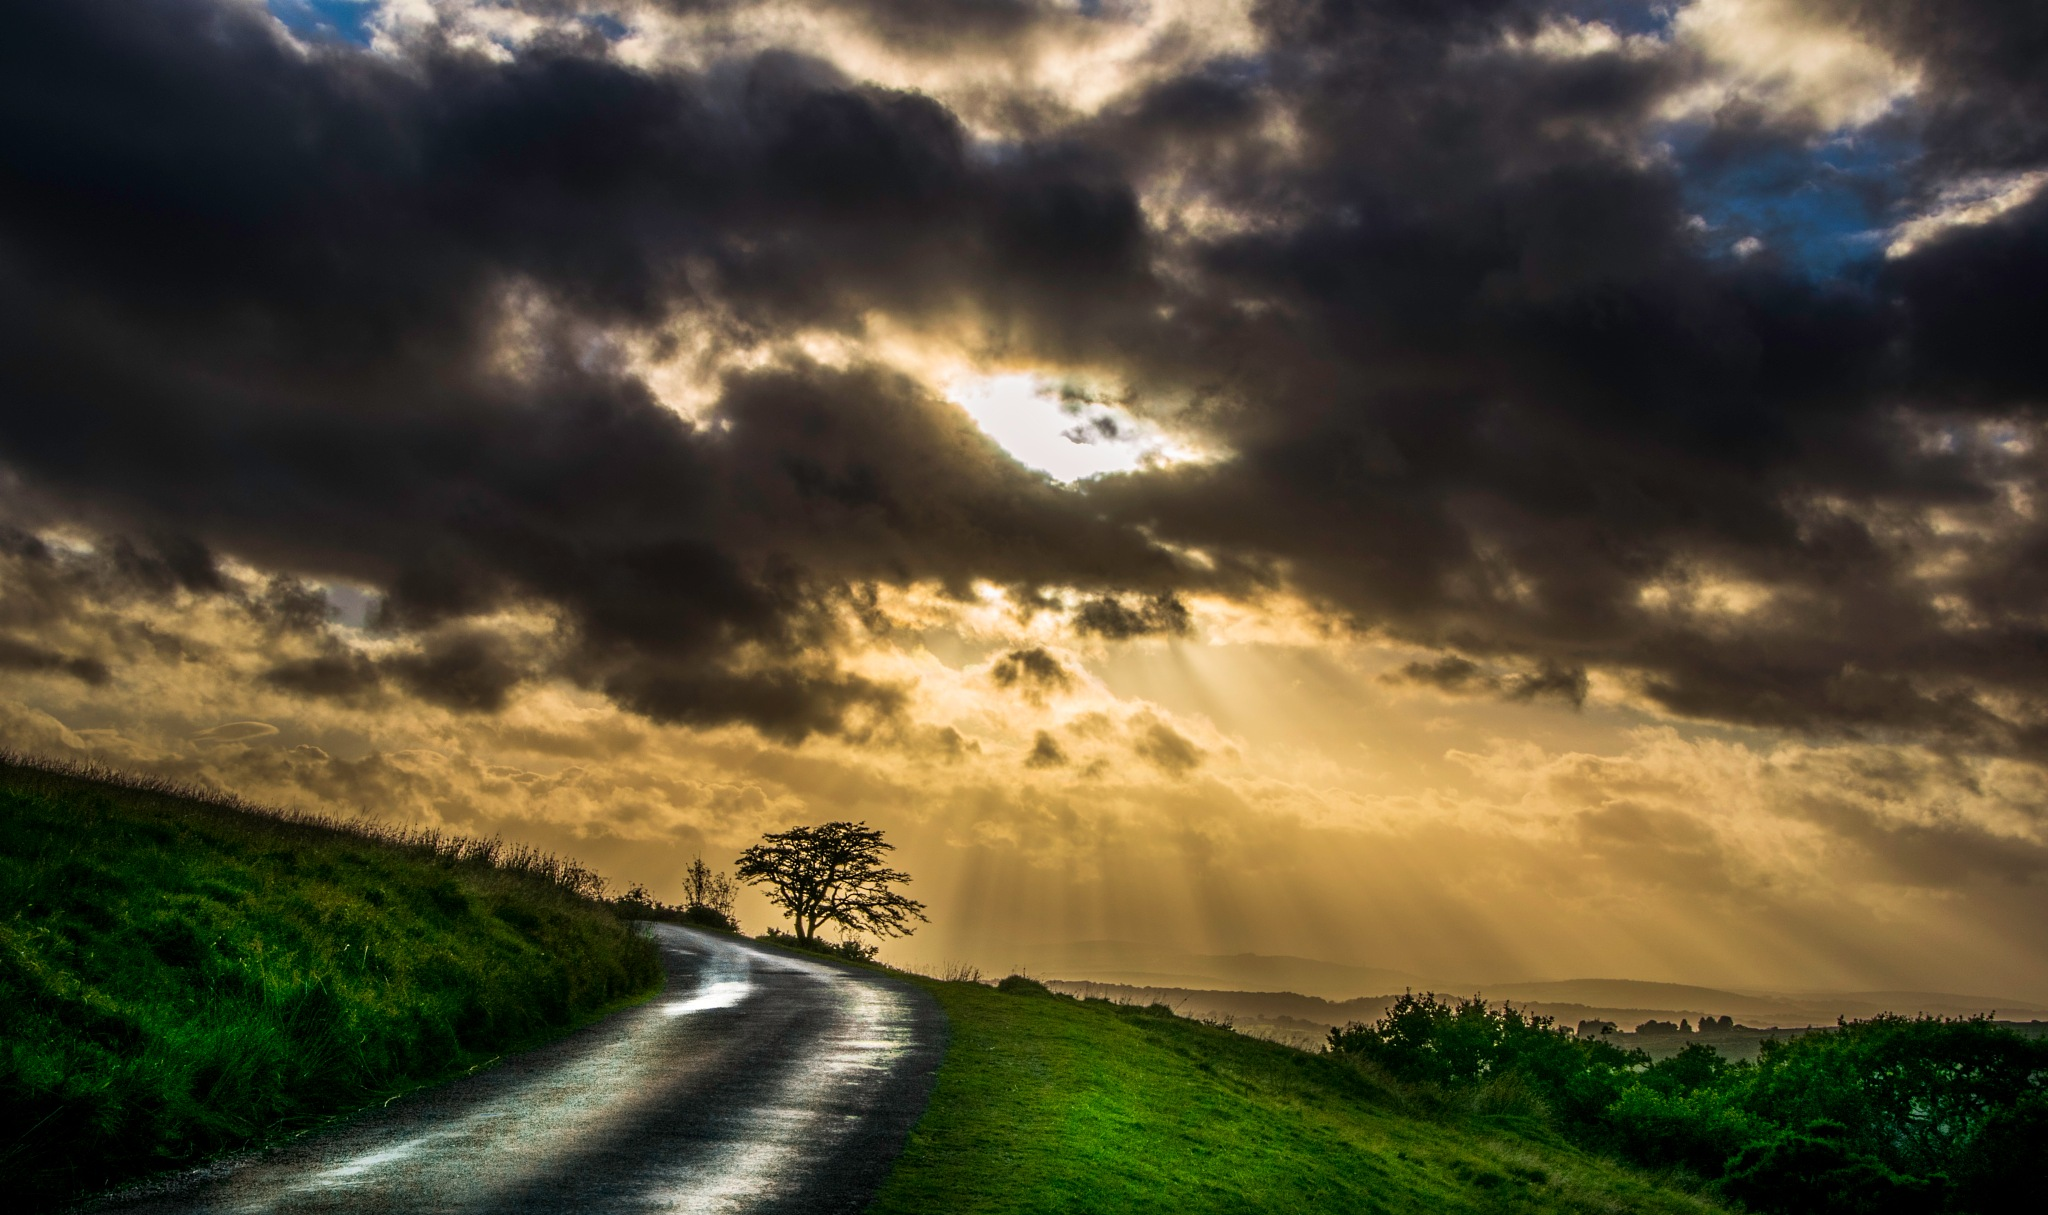 sunlit road by phillip ticehurst